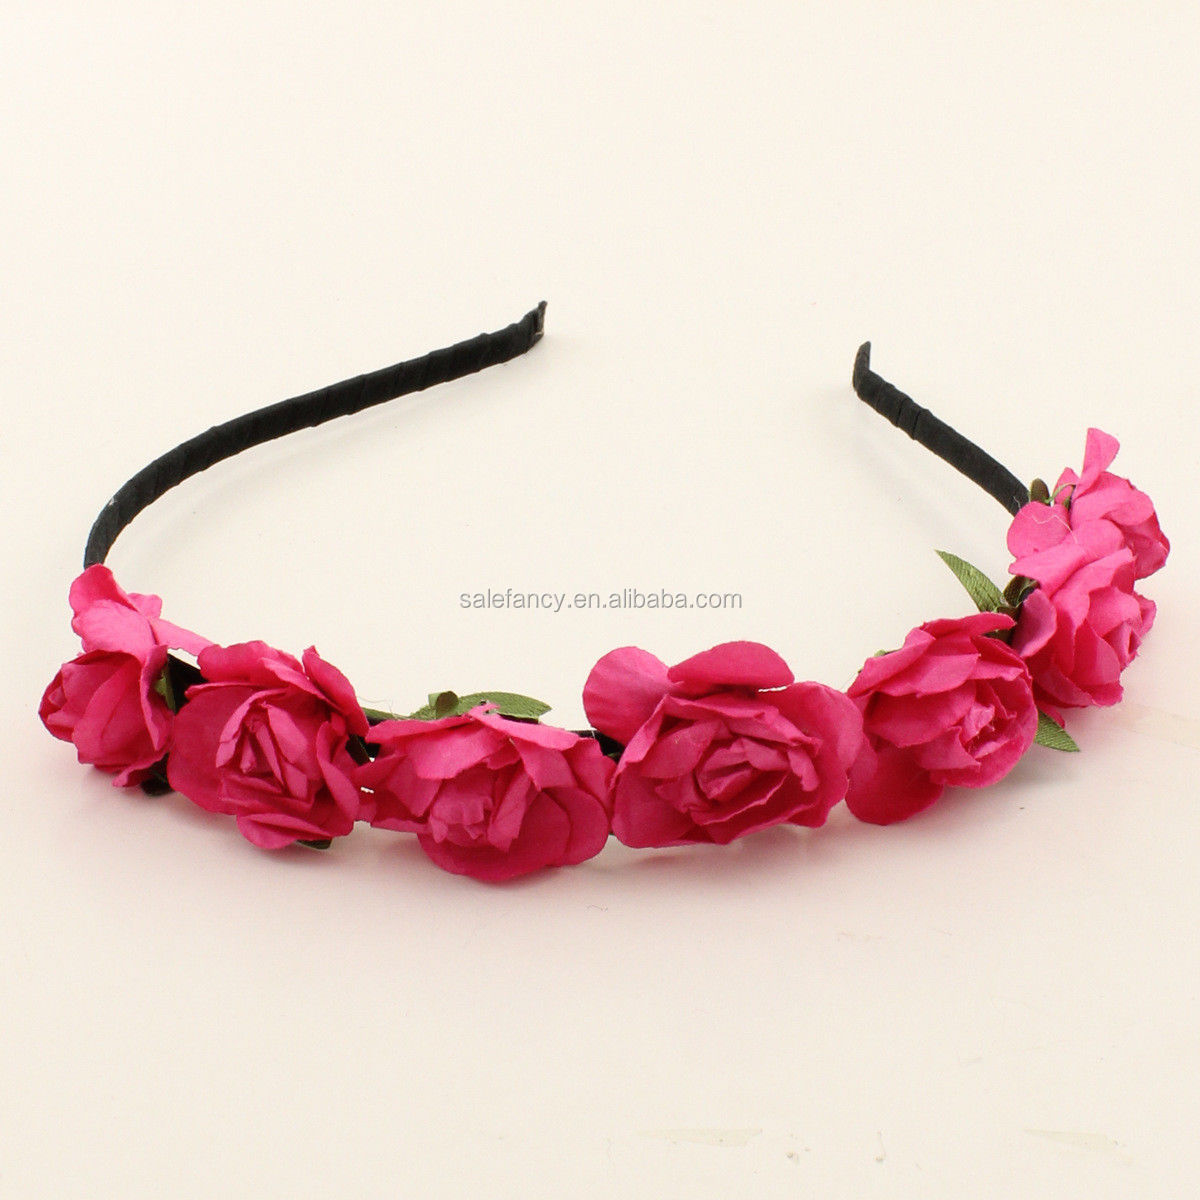 New pick 2 boho flower headbands floral crown blue pink purple red 57 18g izmirmasajfo